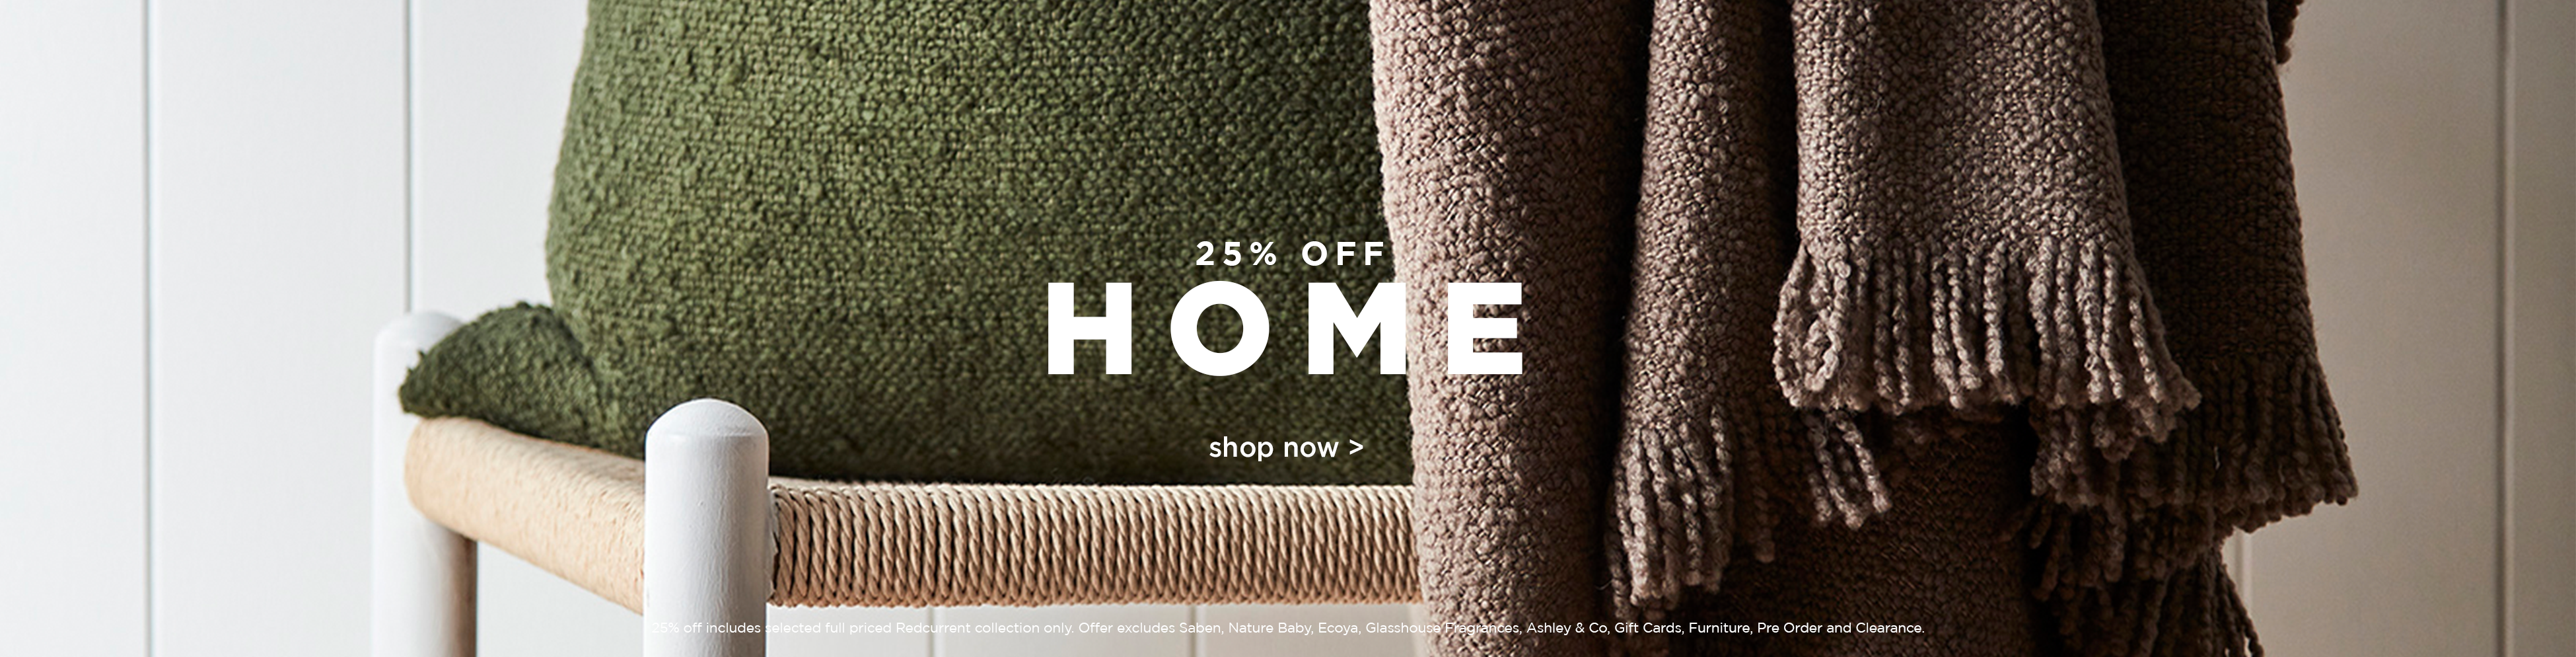 25% Off Home